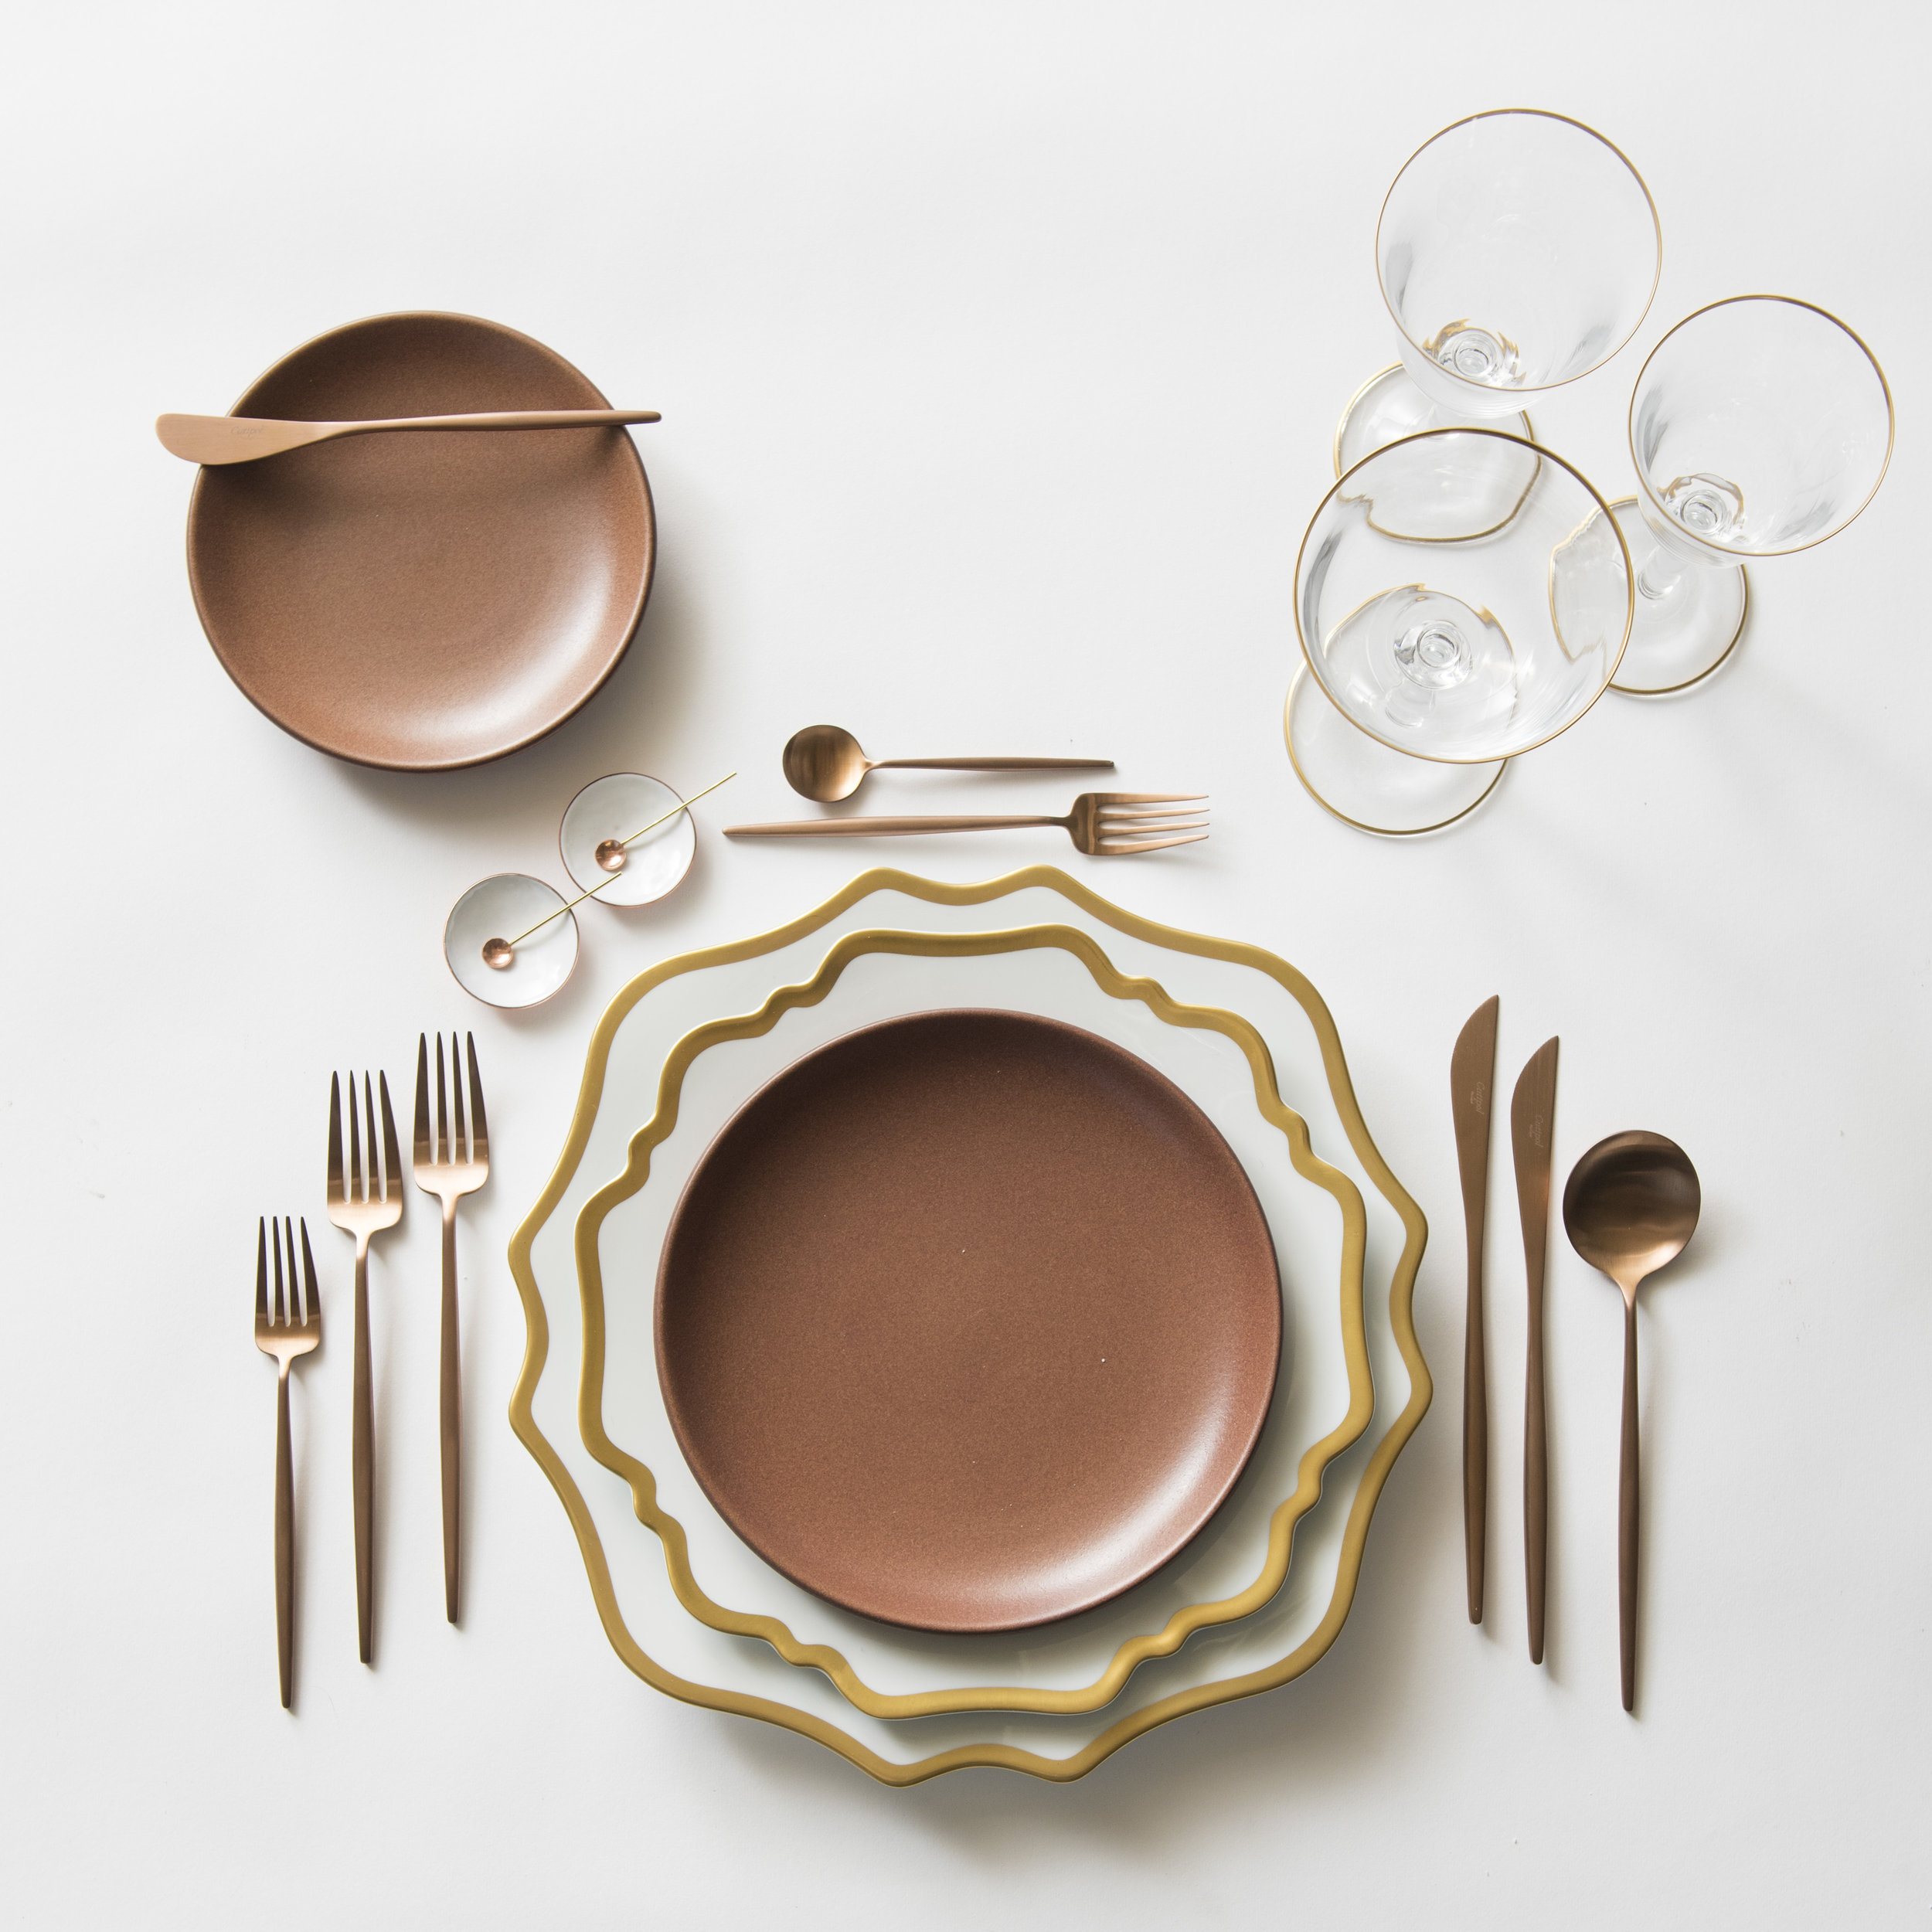 RENT: Anna Weatherley Chargers/Dinnerware in White/Gold + Heath Ceramics in Redwood + Moon Flatware in Brushed Rose Gold + Chloe 24k Gold Rimmed Stemware + White Enamel Salt Cellars + Tiny Gold/Copper Spoons  SHOP:Anna Weatherley Chargers/Dinnerware in White/Gold + Moon Flatware in Brushed Rose Gold + Chloe 24k Gold Rimmed Stemware + White Enamel Salt Cellars